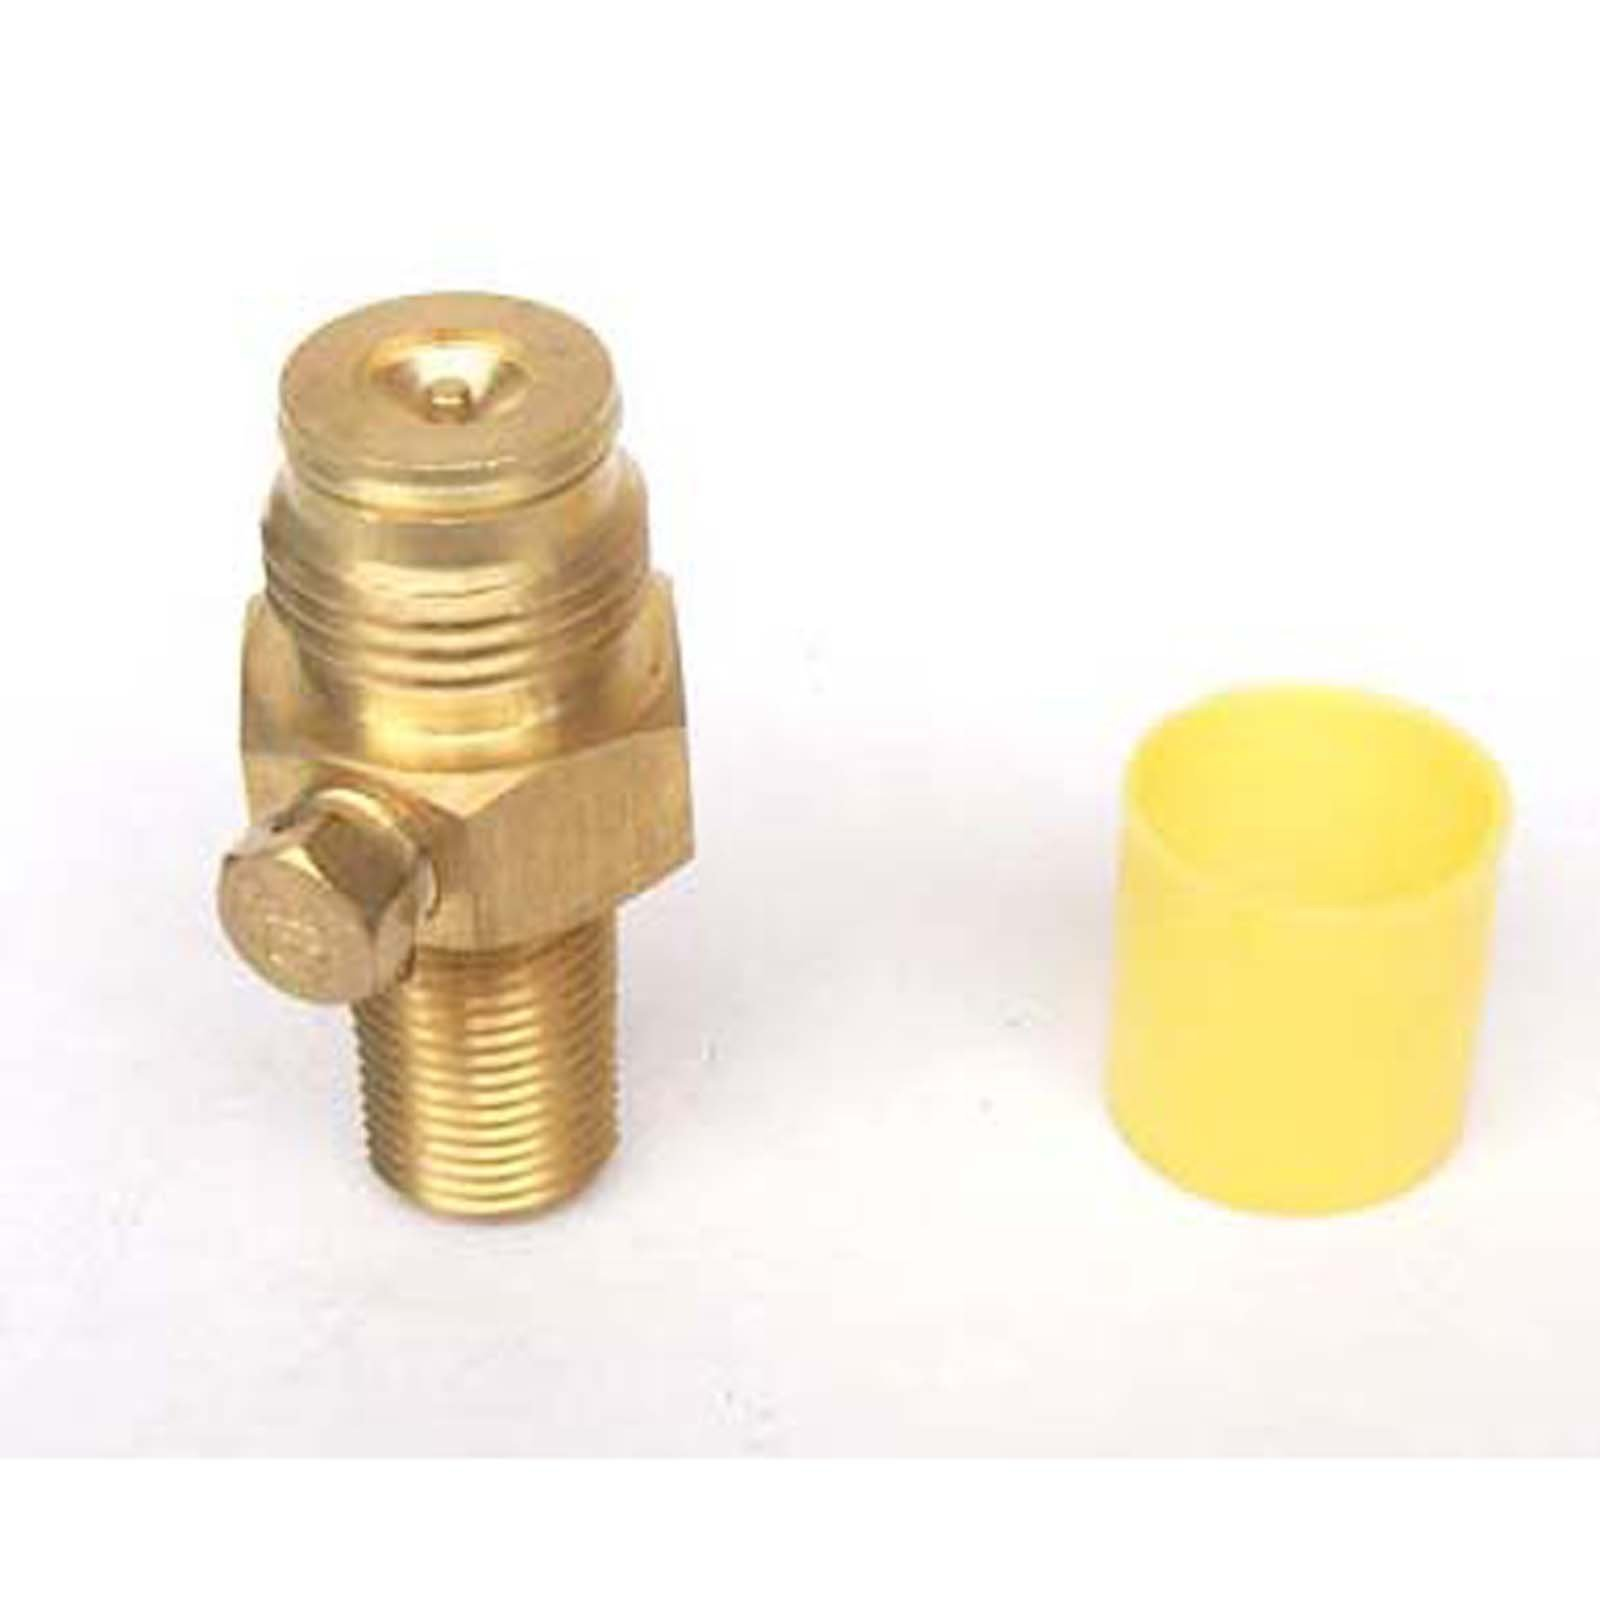 Generic Paintball Co2 Tank Pin Valve by Generic